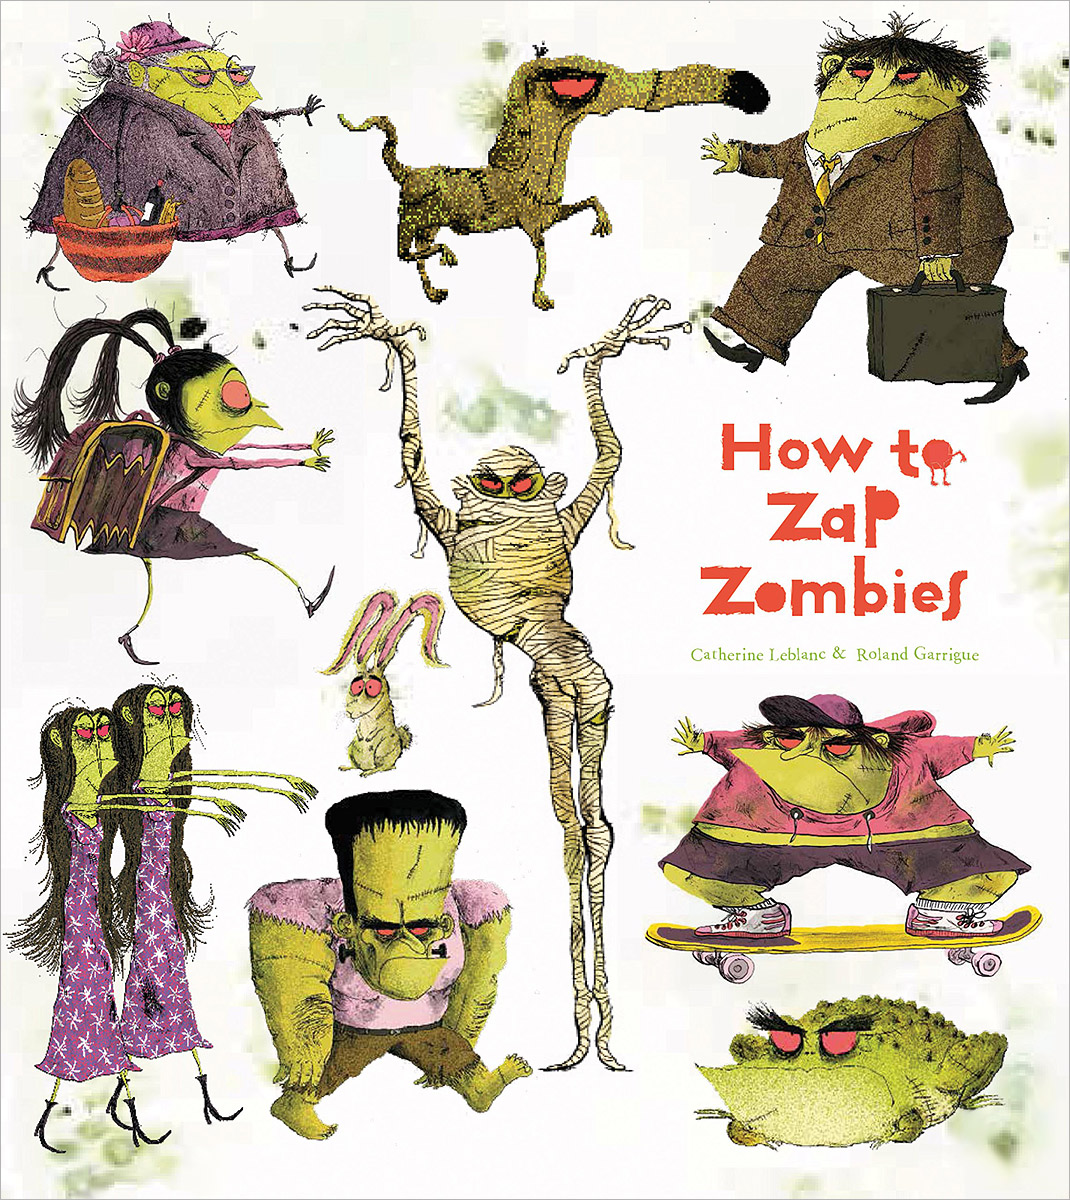 How to Zap Zombies the zombies колин бланстоун род аргент the zombies featuring colin blunstone